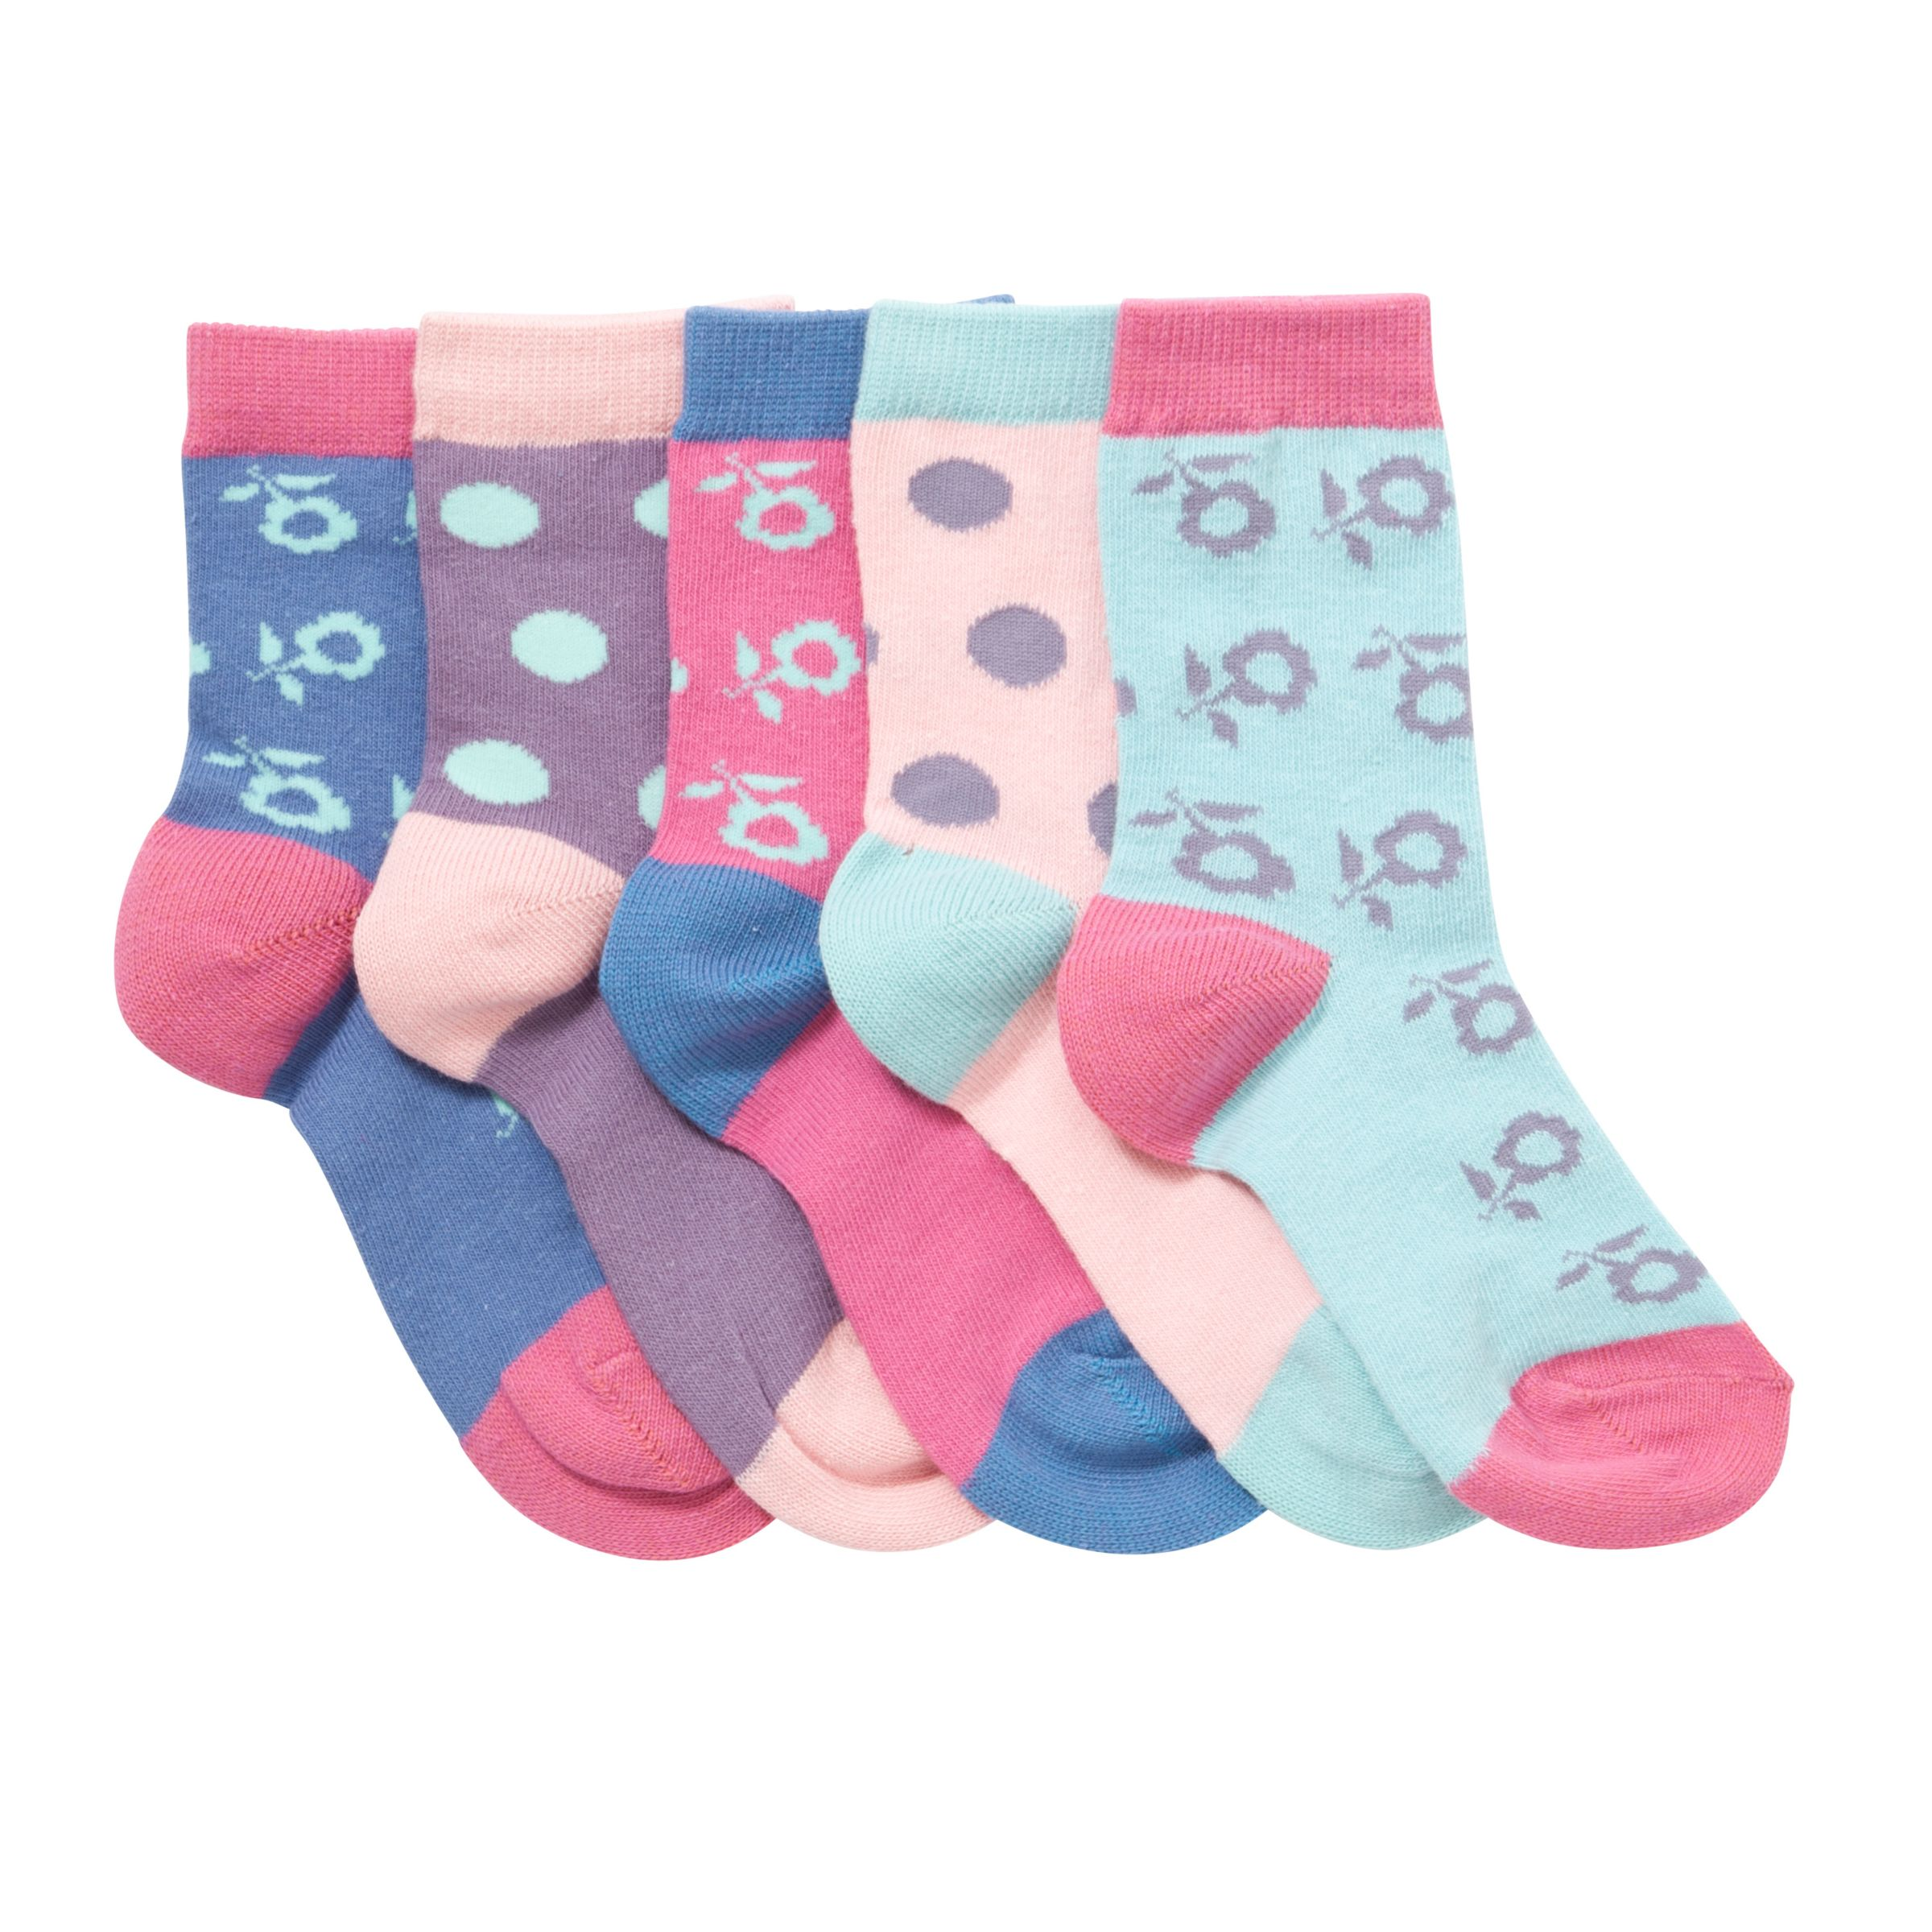 John Lewis Girl Floral & Dot Socks, Pack of 5, Multi